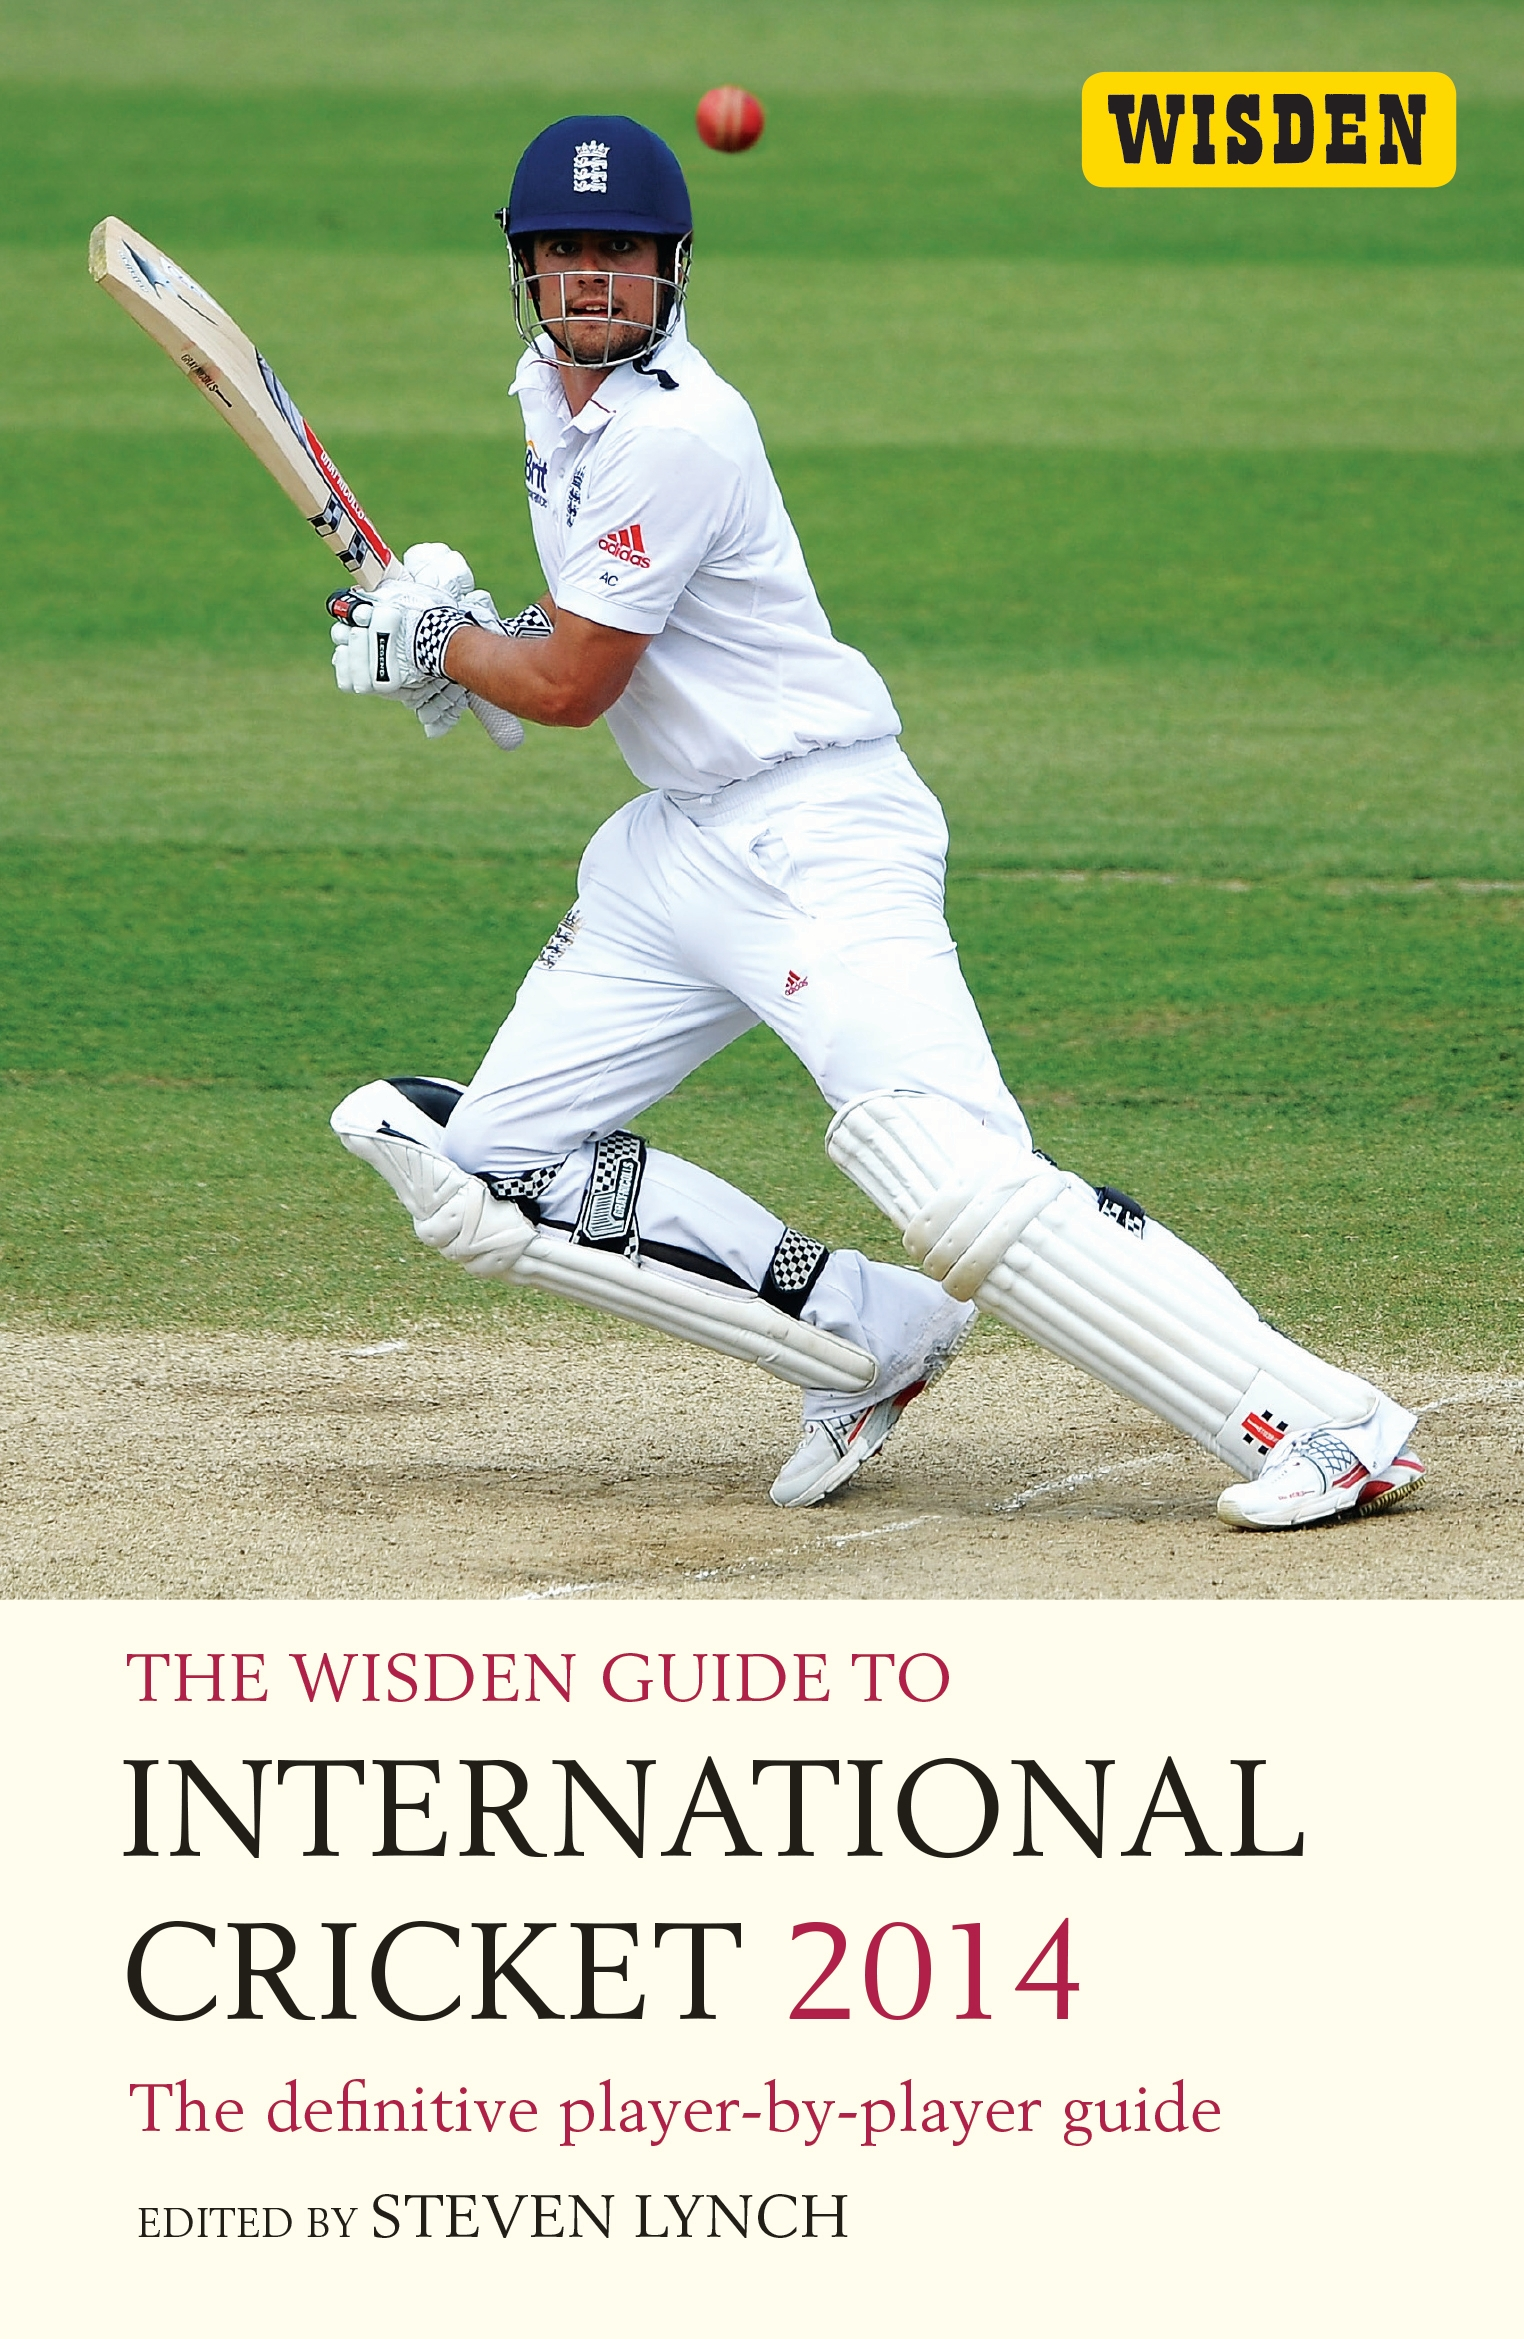 The Wisden Guide to International Cricket 2014 The Definitive Player-by-Player Guide